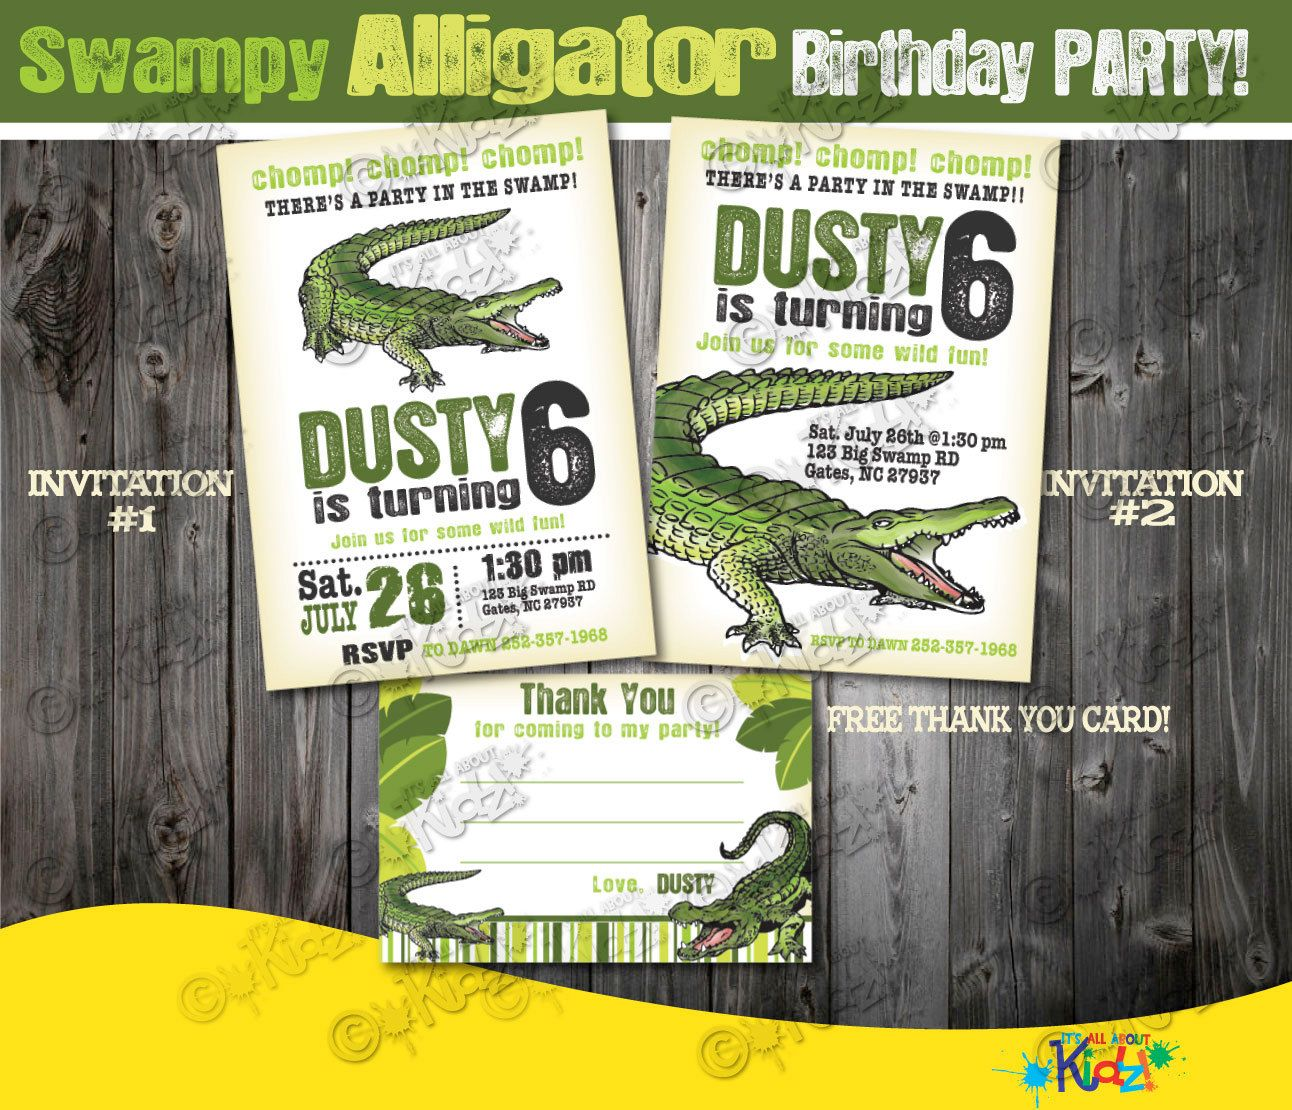 Free Thank You Card Alligator Party Invitation Birthday Invite Swamp